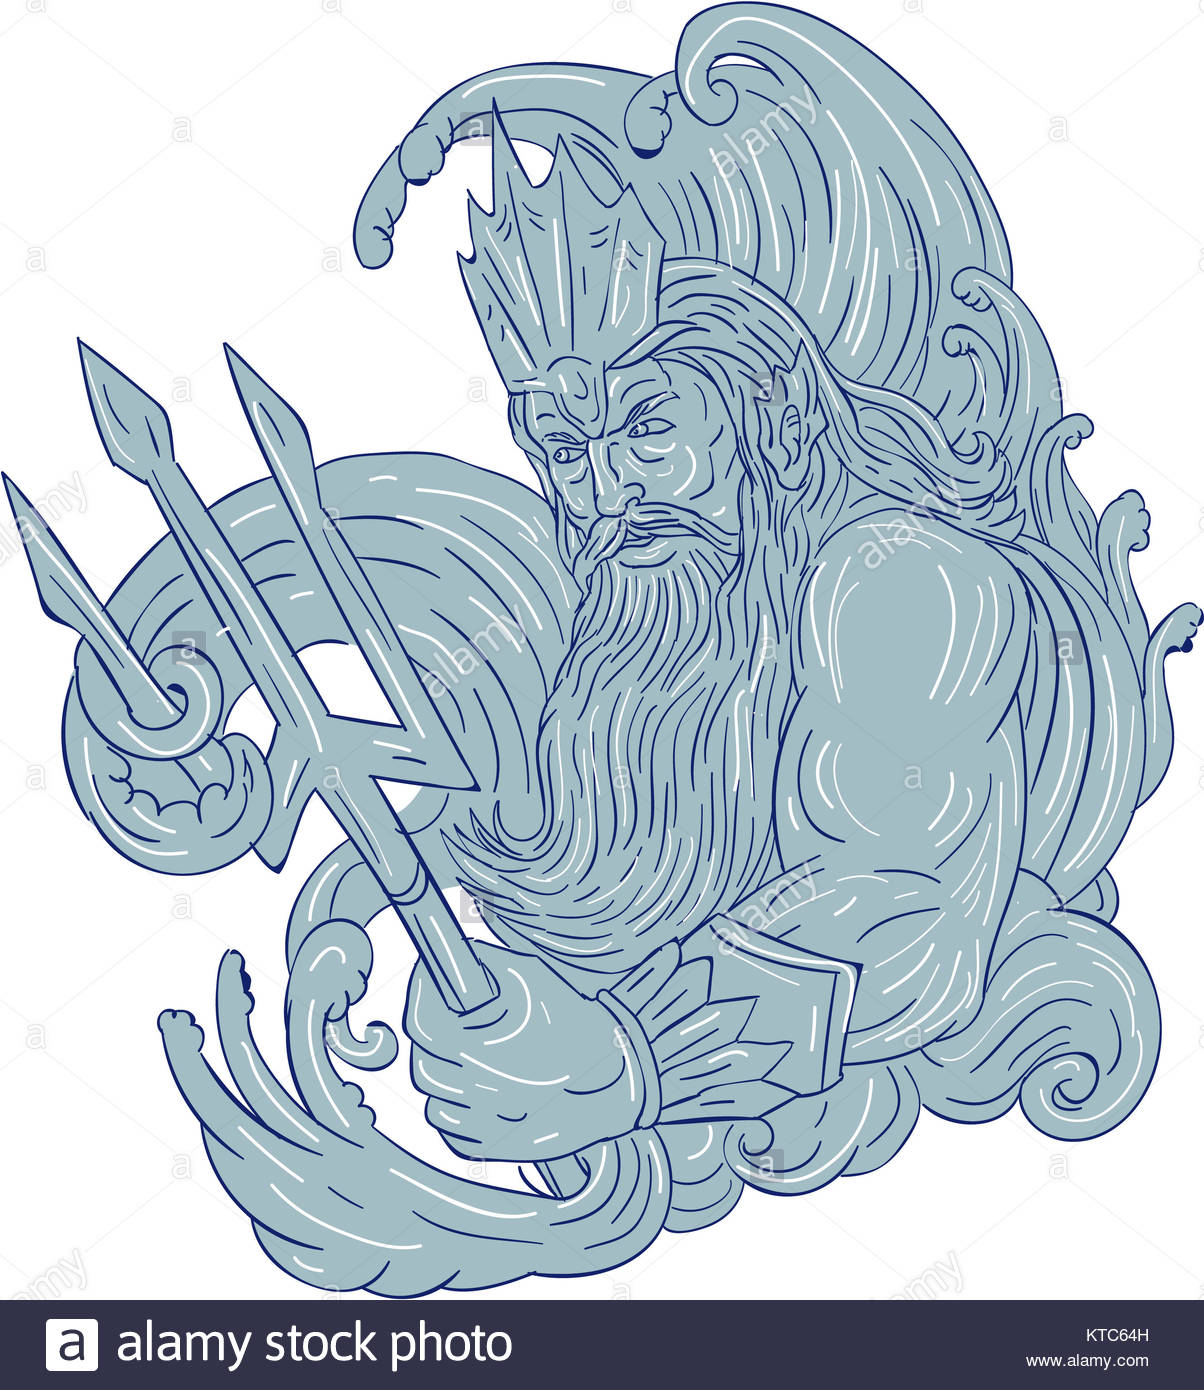 It's just a photo of Challenger Drawing Of Poseidon